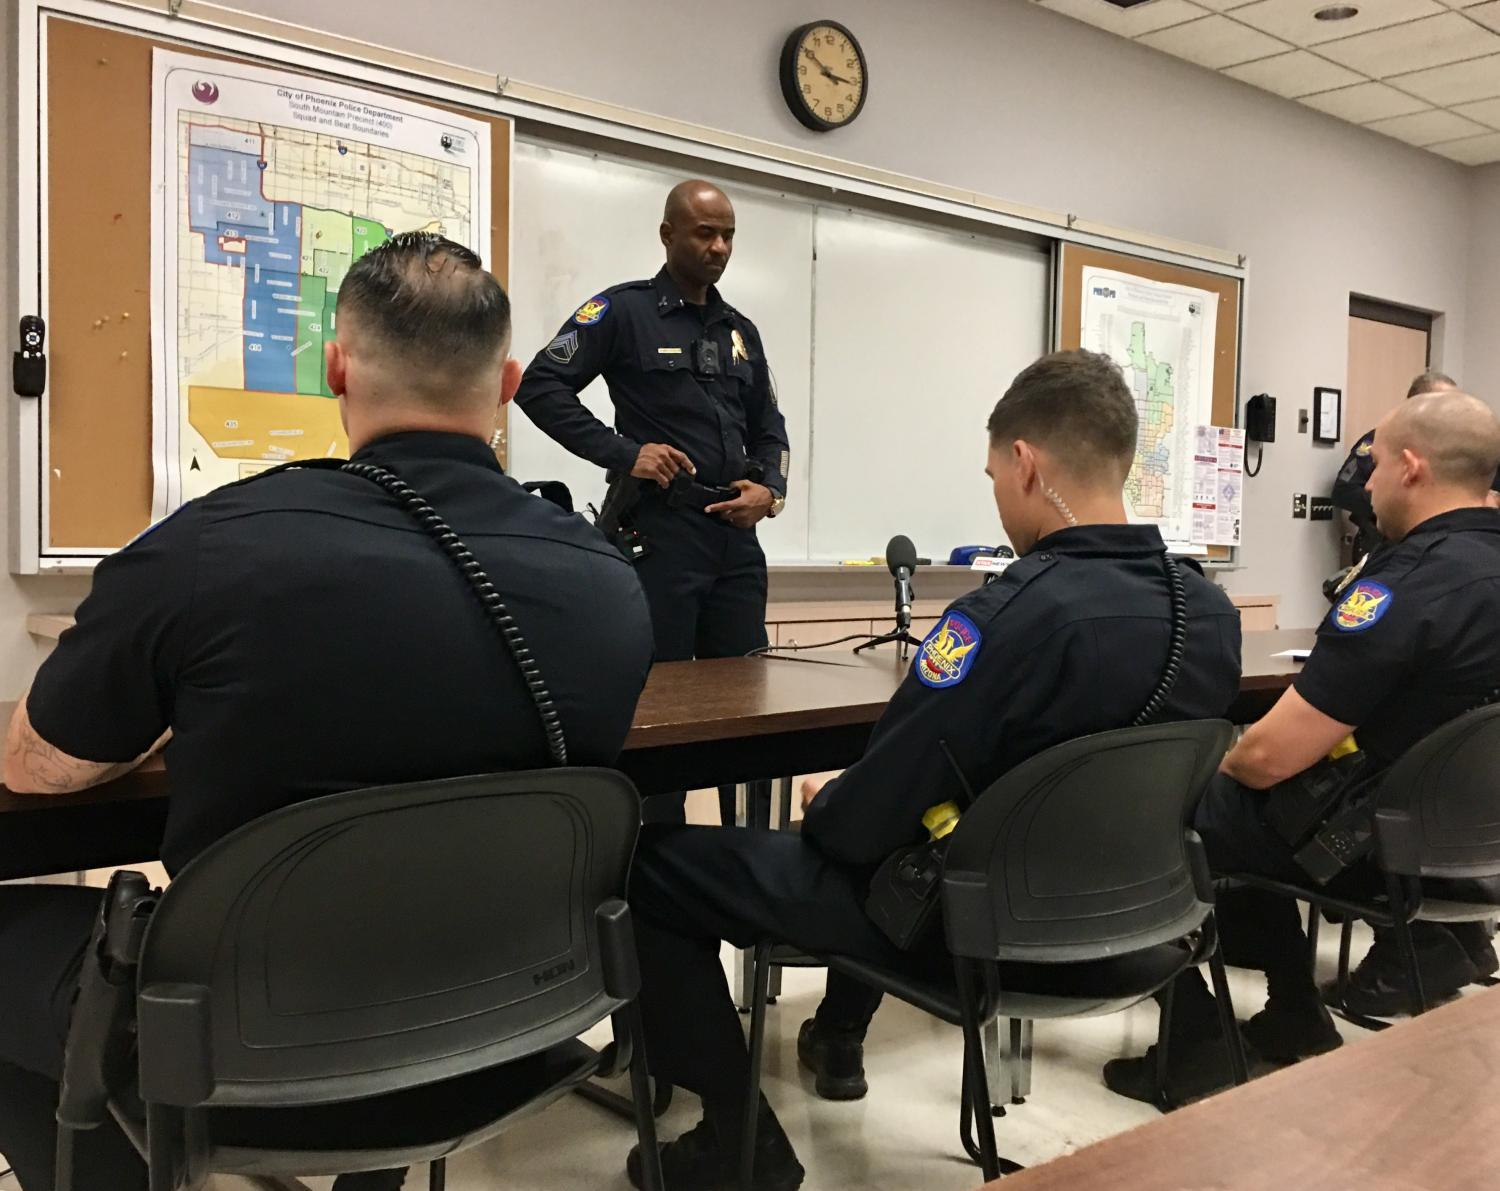 sergeant talking to officers